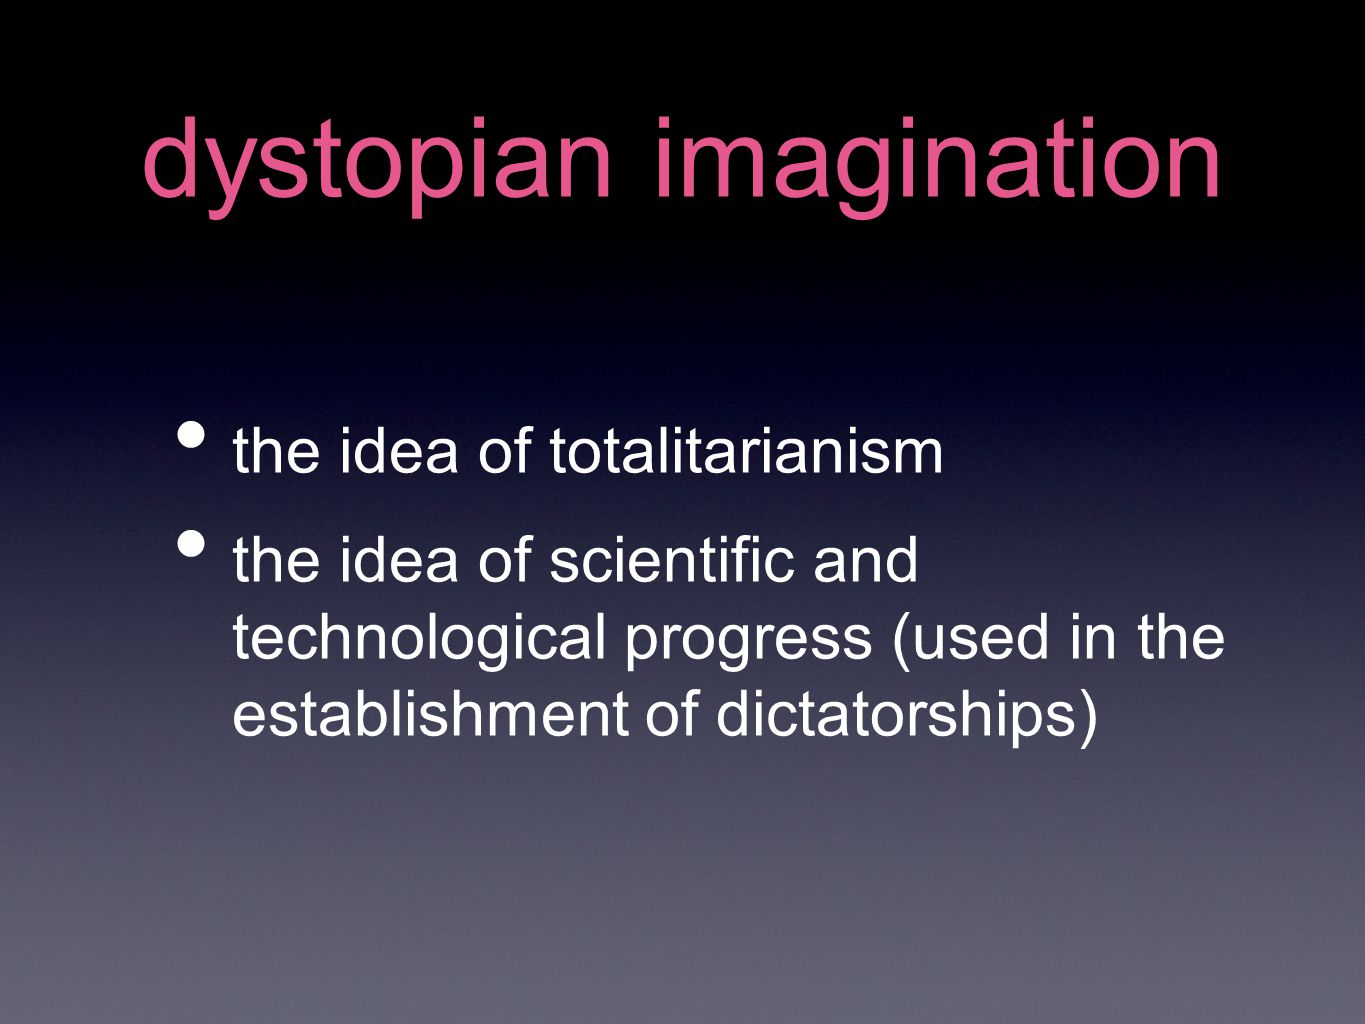 dystopian imagination the idea of totalitarianism the idea of scientific and technological progress (used in the establishment of dictatorships)